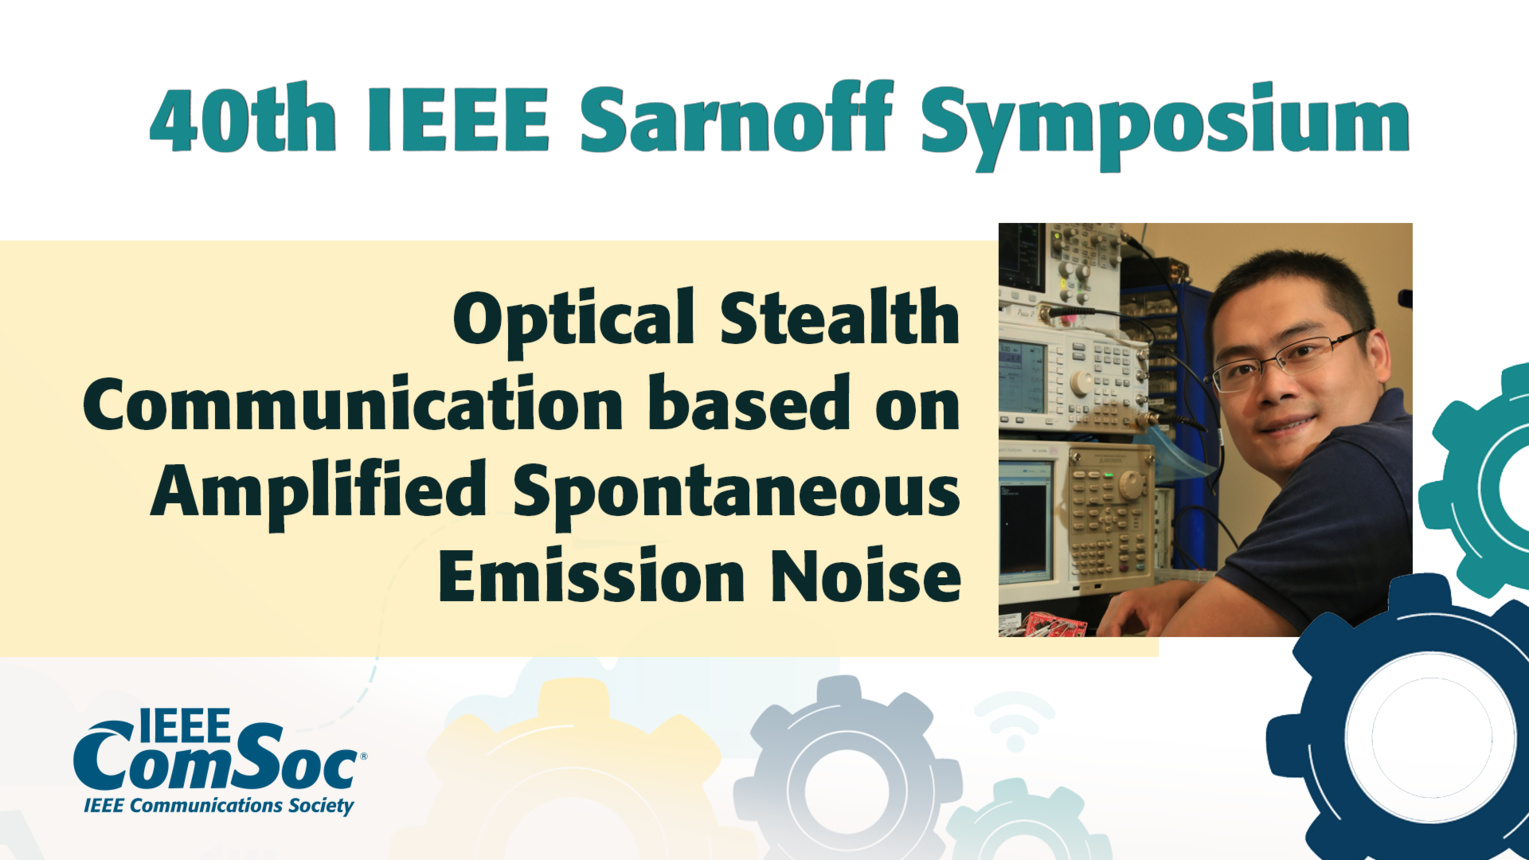 Optical Stealth Communication based on Amplified Spontaneous Emission Noise - Ben Wu - IEEE Sarnoff Symposium, 2019